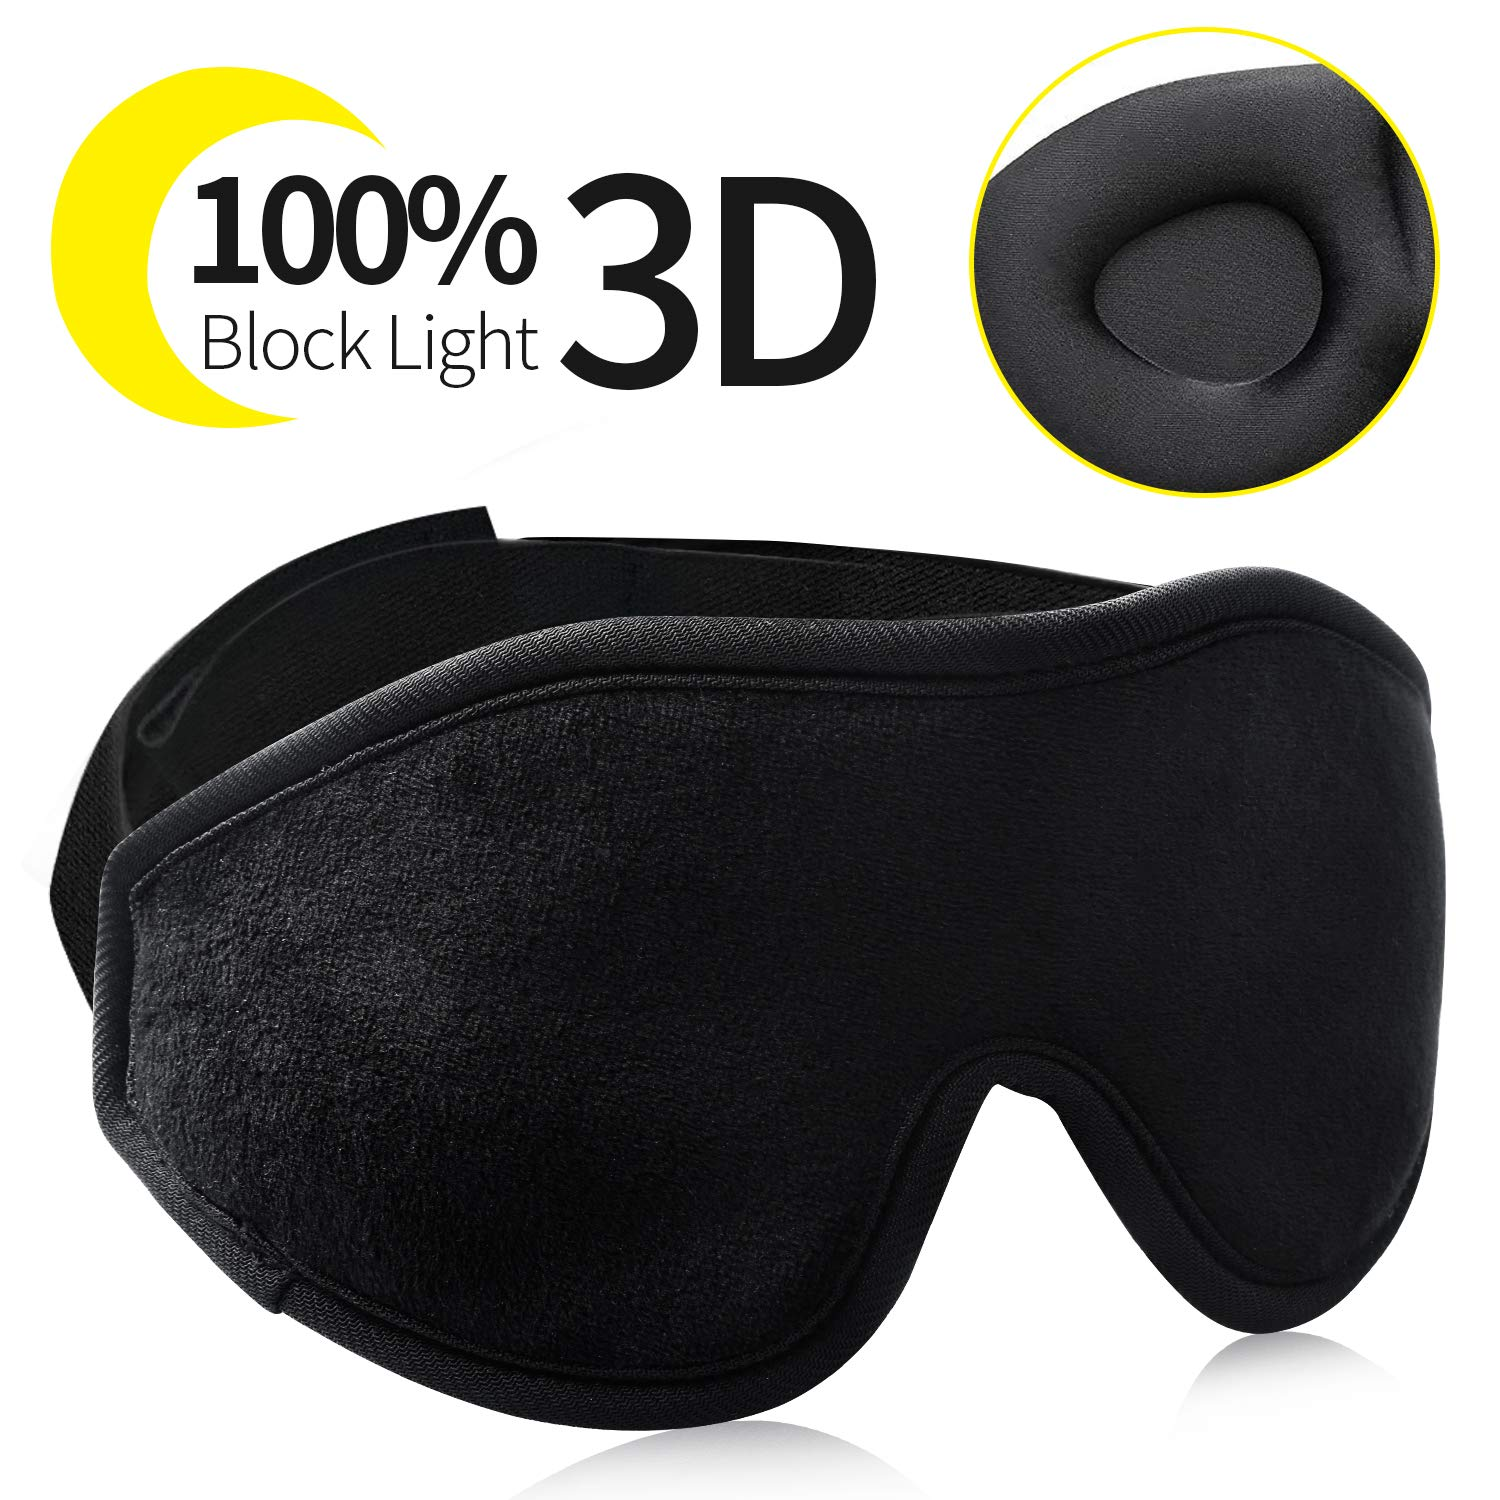 XUENG Sleep Eye Mask for Women Men 3D Soft Eye Shade Covers Pillow for Sleeping Blindfold with Travel Pouch 100% Lightproof Silk Night Sleep Mask for Yoga Meditation Traveling Black by XUENG